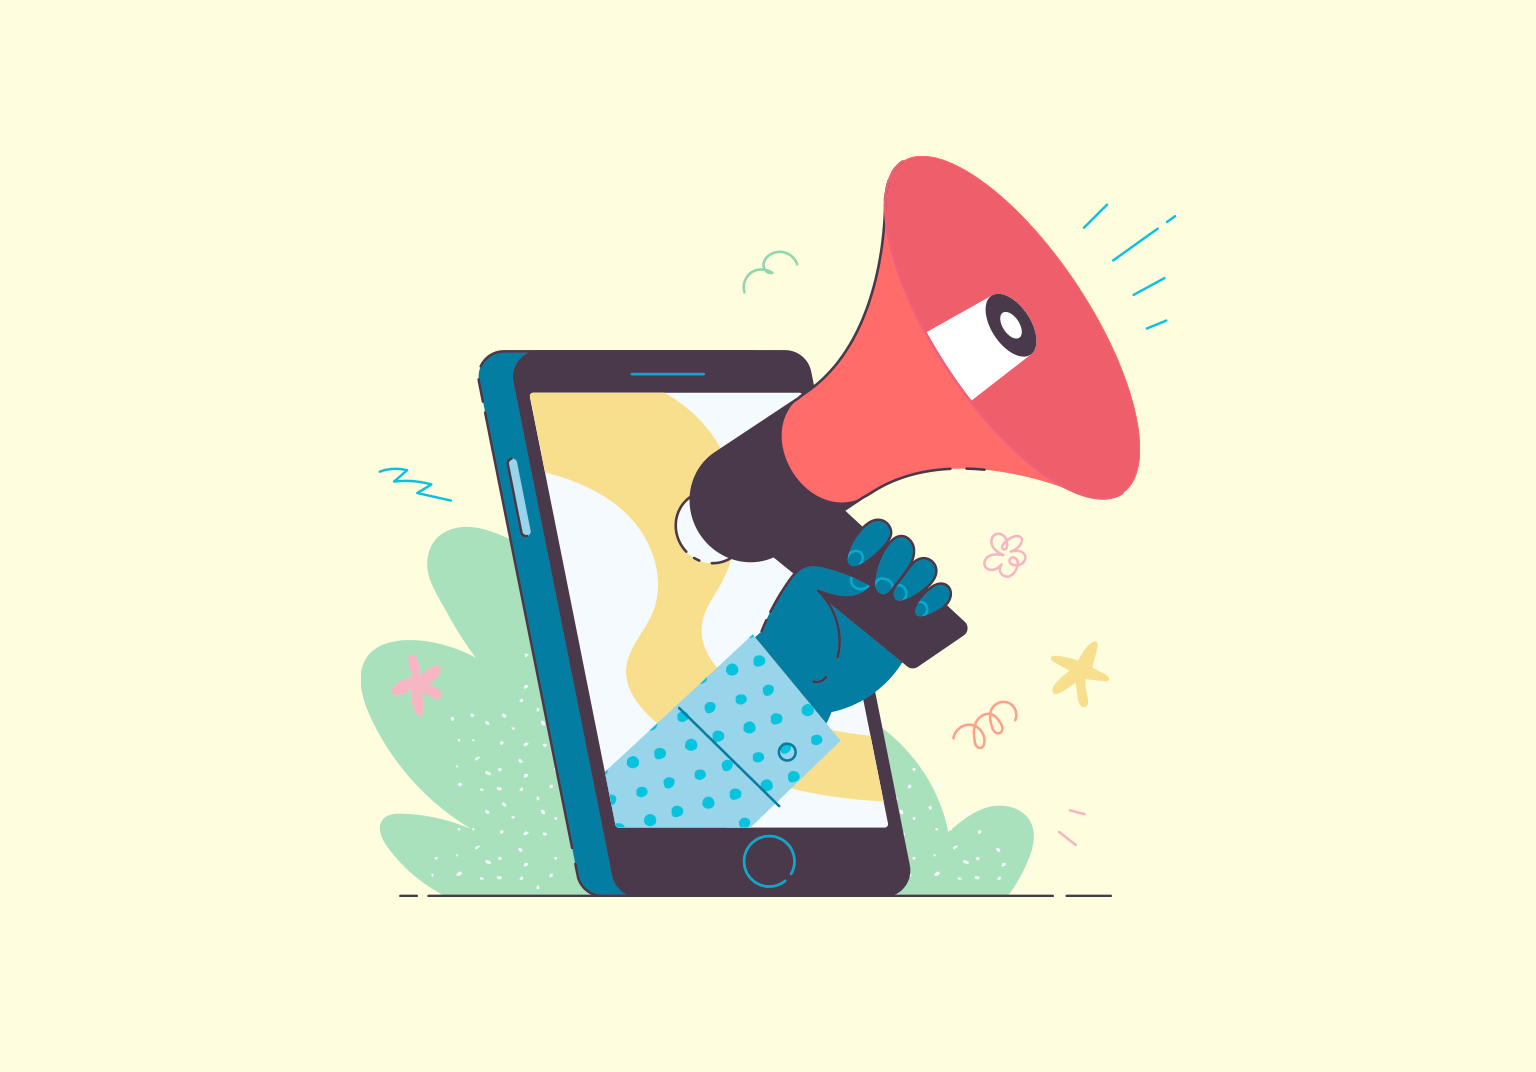 An illustration of a mobile phone with a hand holding a megaphone in the centre